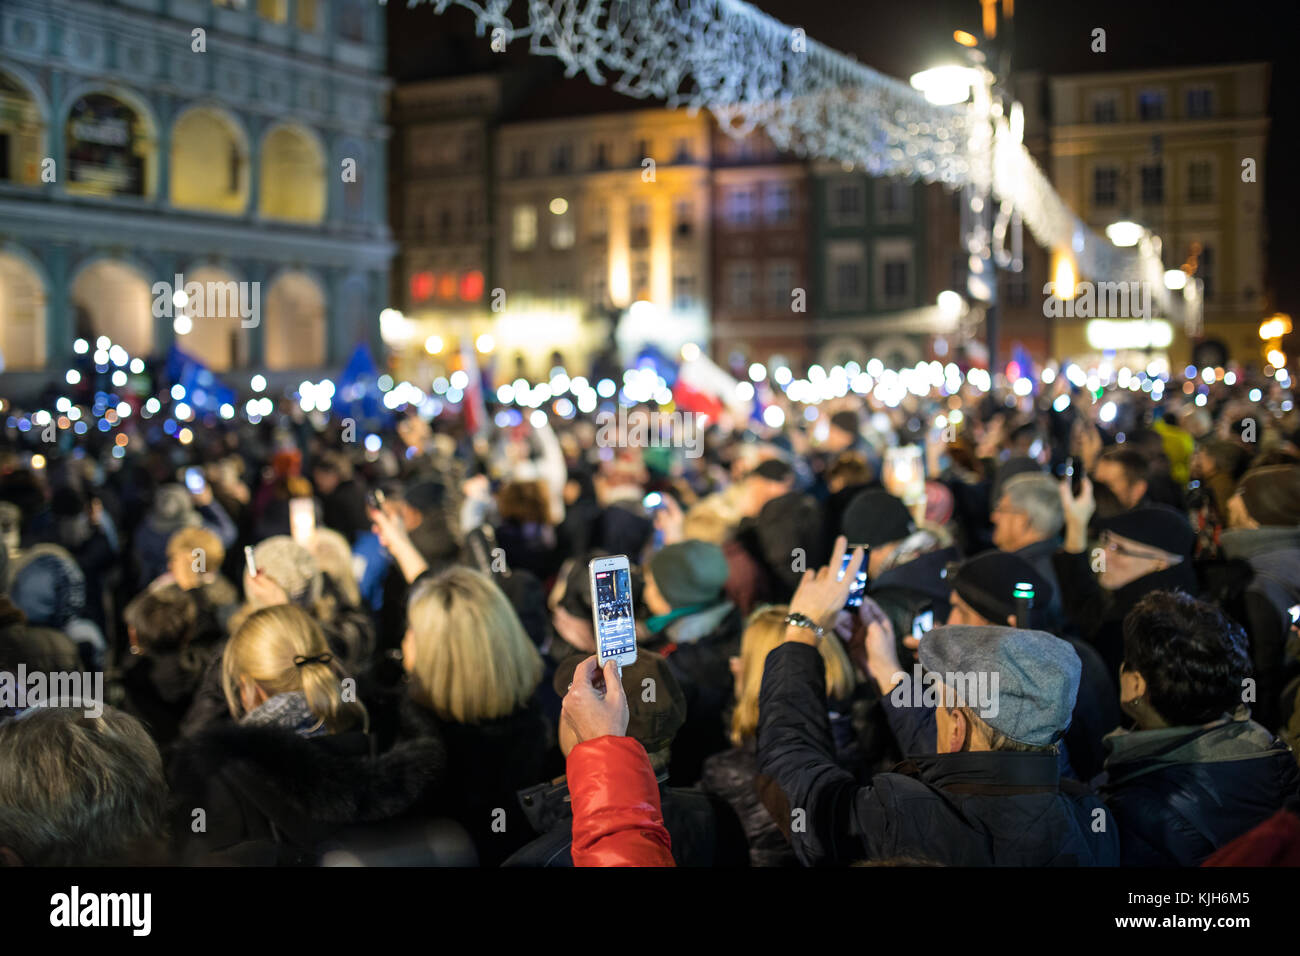 Poznan, Poland. 24th November, 2017. Lights for judiciary - protest against violation the constitutional law in - Stock Image